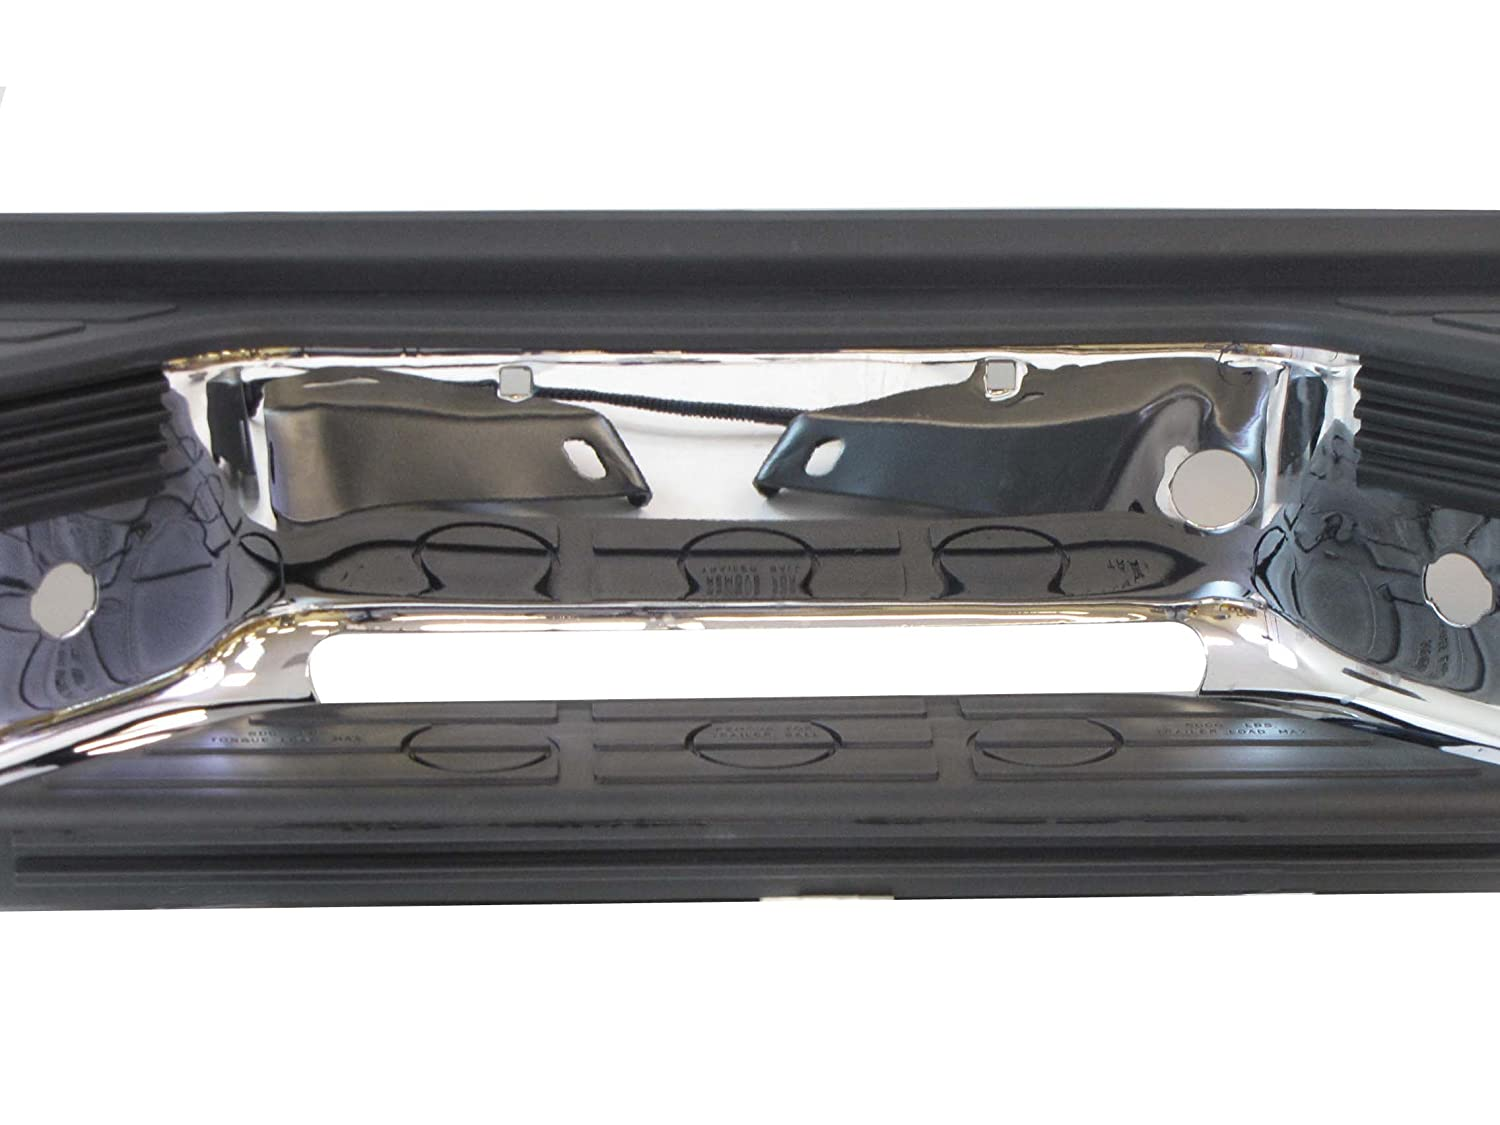 All Chevy 98 chevy bumper : Amazon.com: Chevy Pickup Pick Up Truck 88-98 Bumper Rear/Back ...